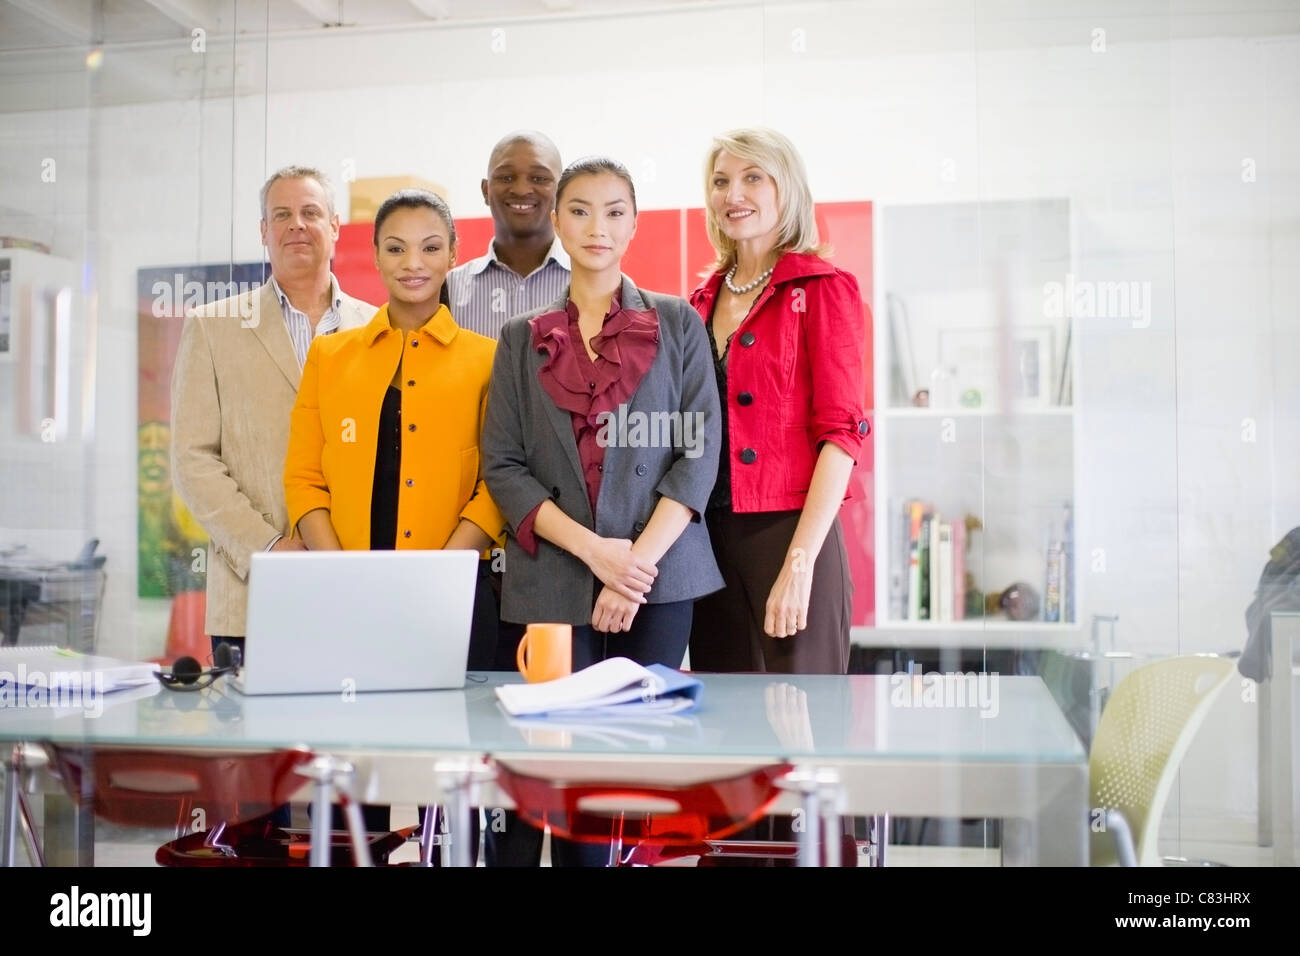 Business people smiling in office - Stock Image